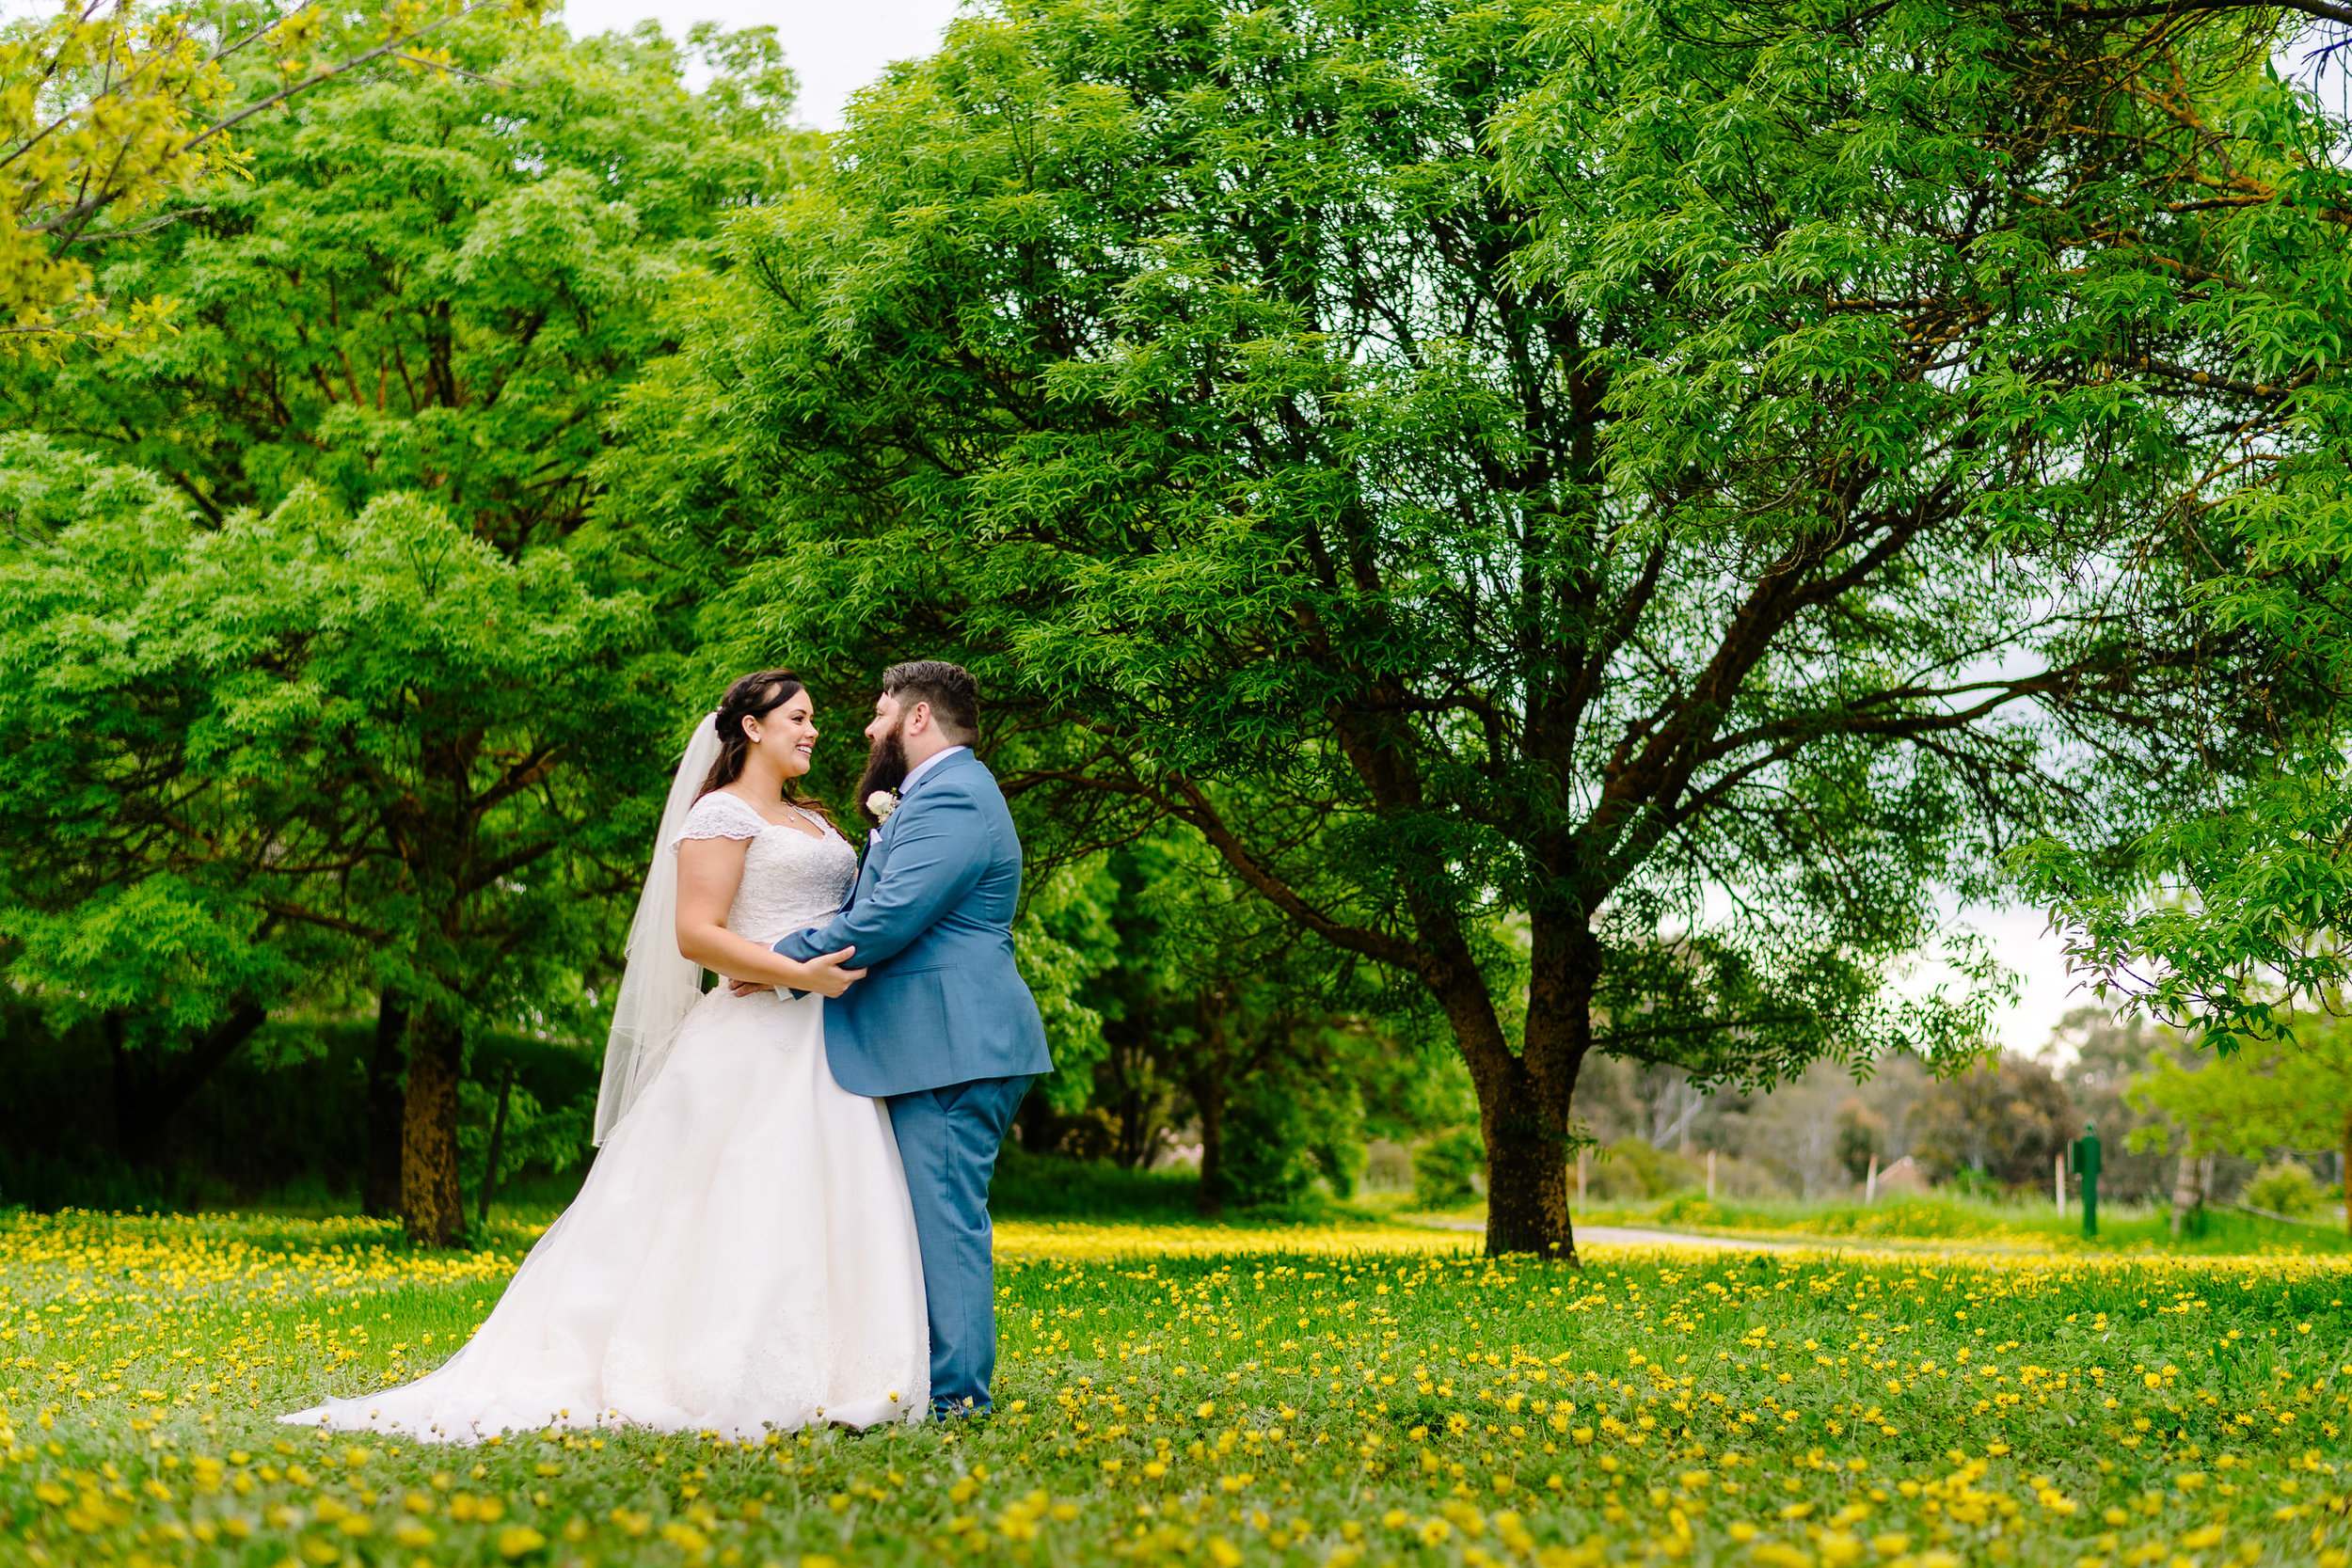 Chateau_Dore_Wedding_Photography_Justin_and_Jim-157.JPG